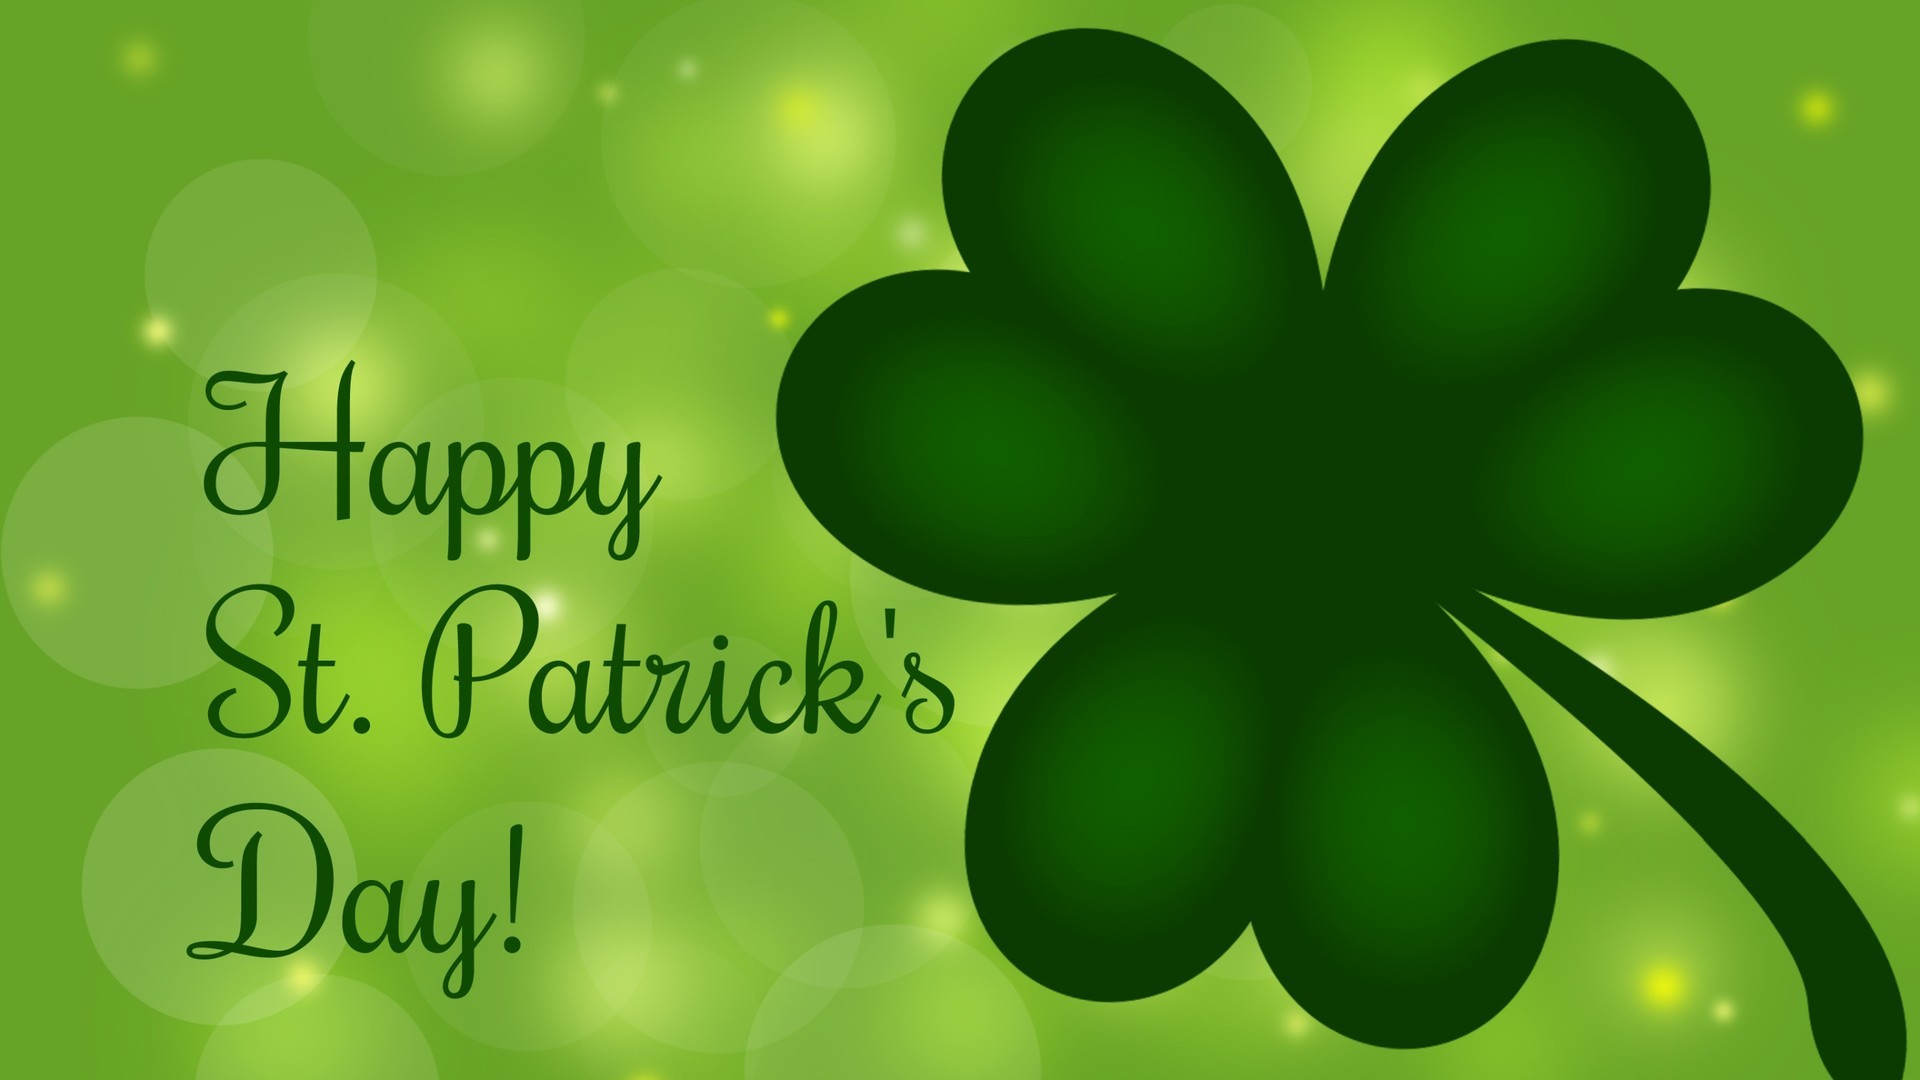 1920x1080 Happy Saint Patrick Background · happy saint patrick background free  powerpoint background. PowerPoint Backgrounds